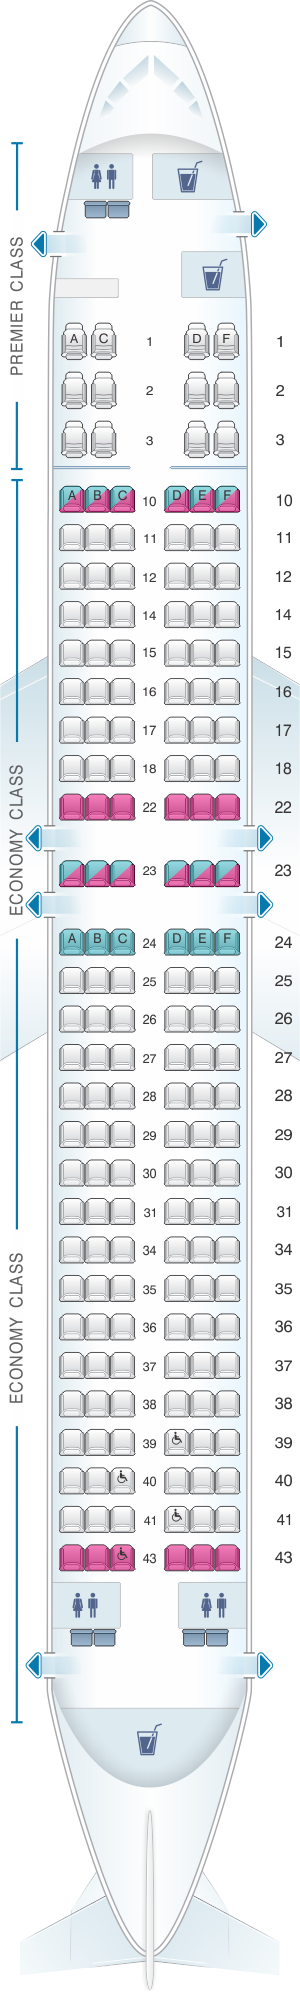 Seat map for Jet Airways Boeing B737 MAX 8